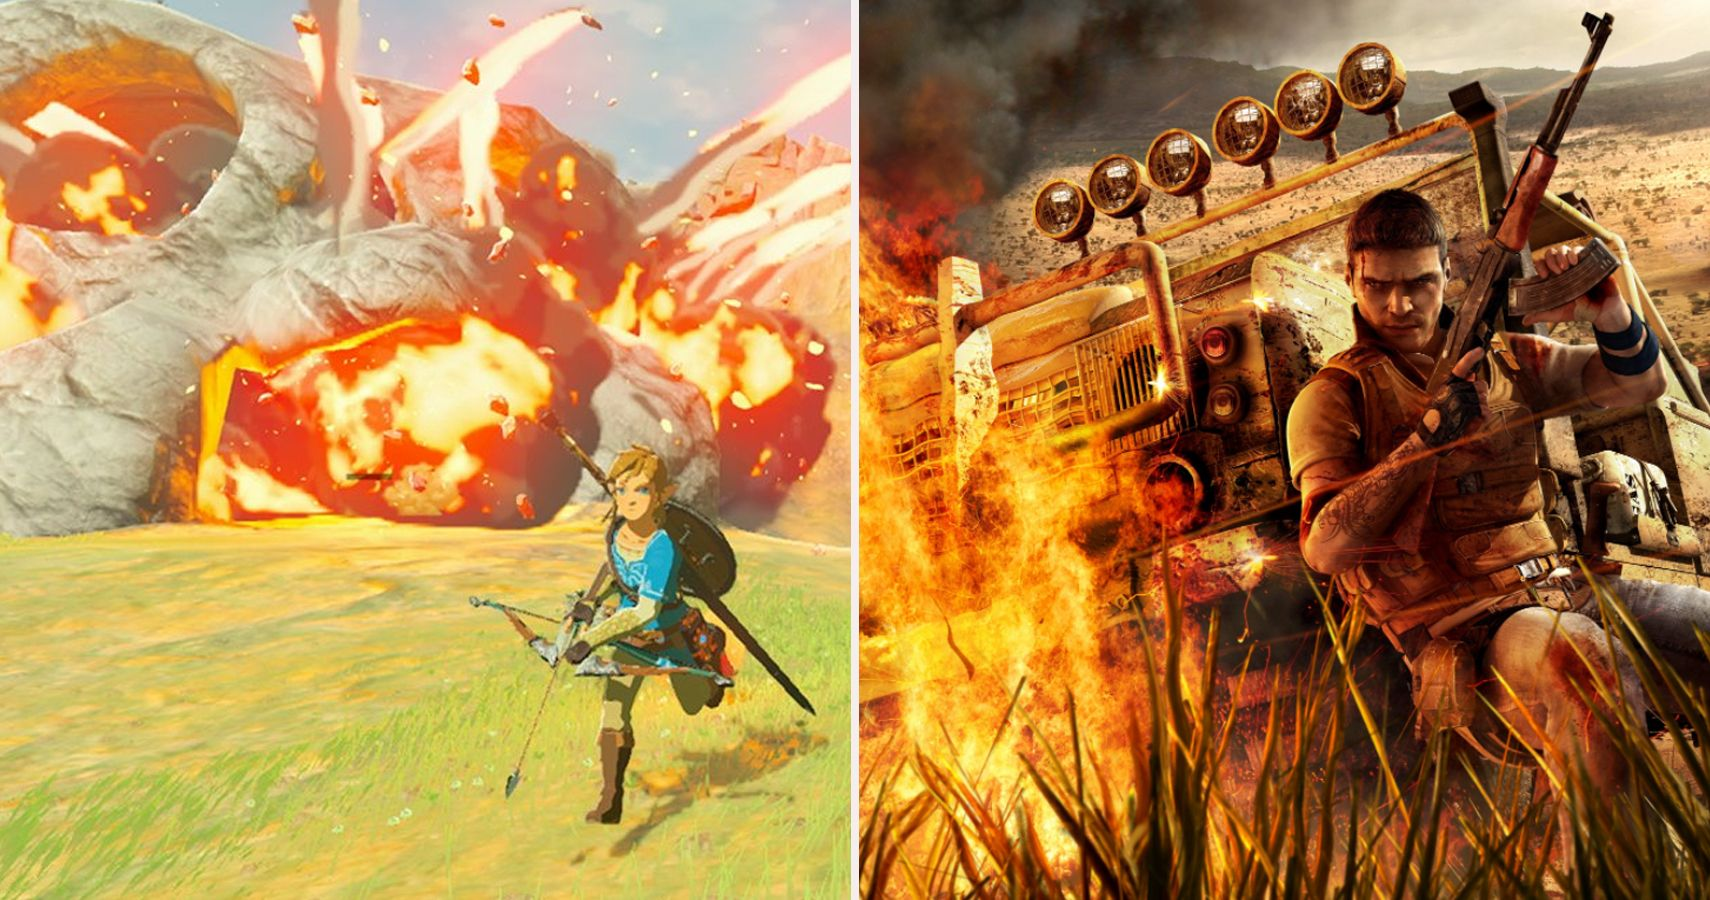 15 Mechanics Breath Of The Wild Copies From Other Games